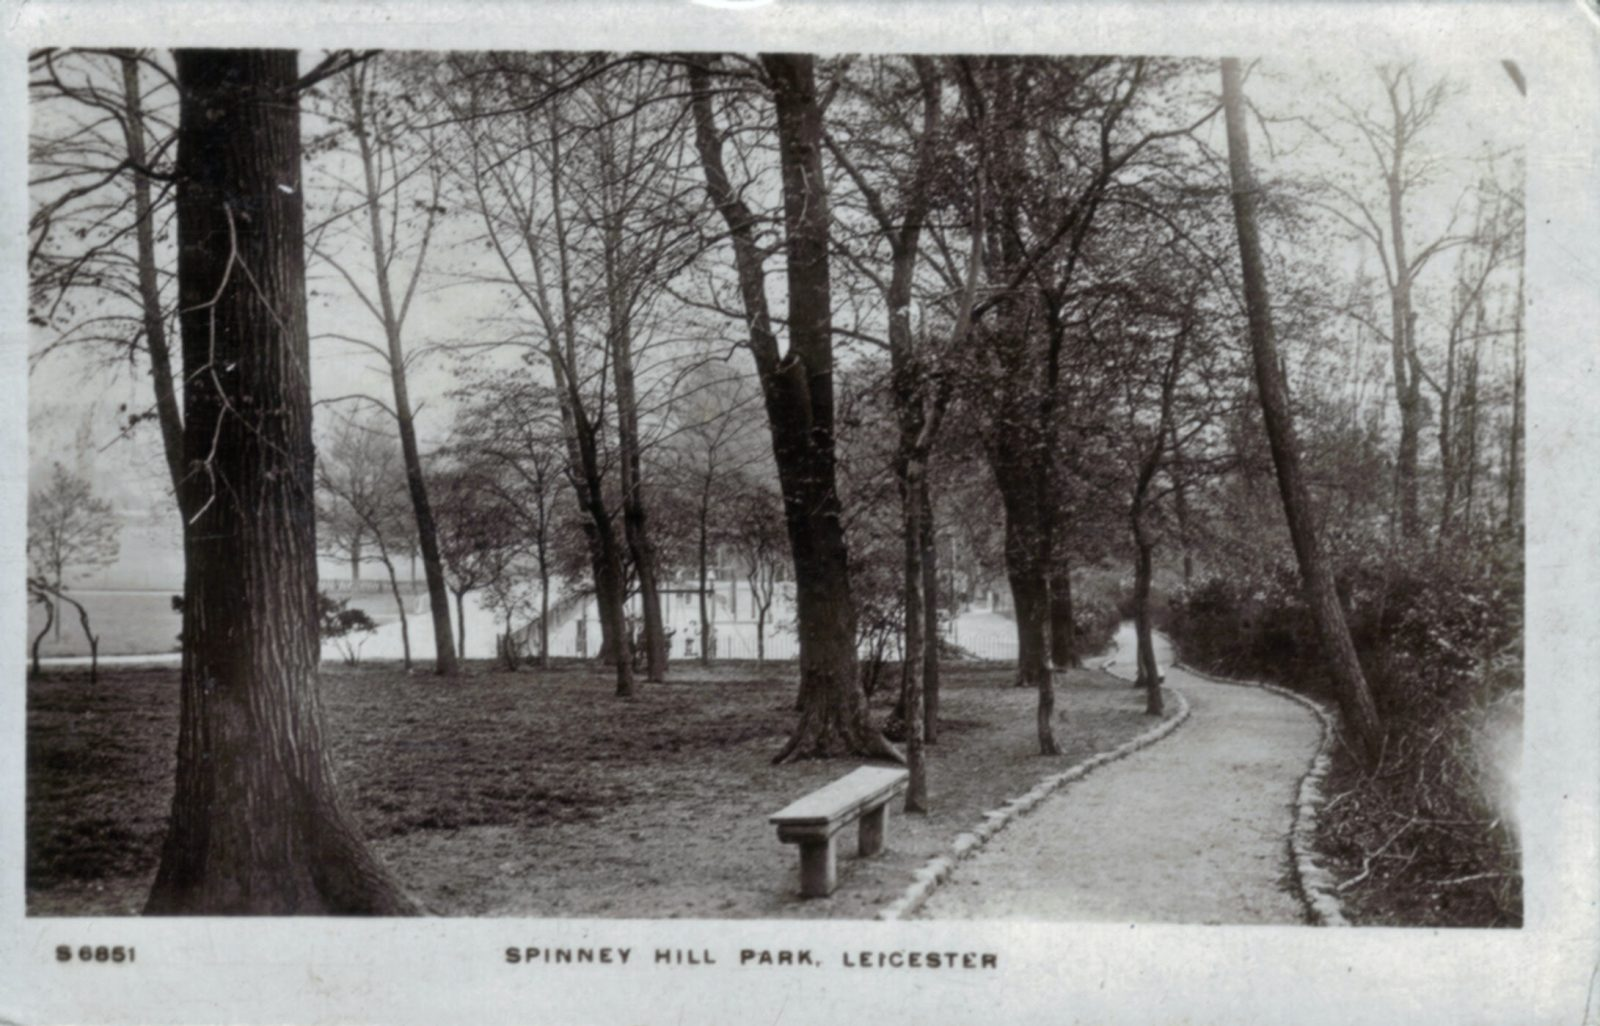 Spinney Hill Park, Leicester. Undated: Path, trees and pond. Posted 1911-12 (File:1062)